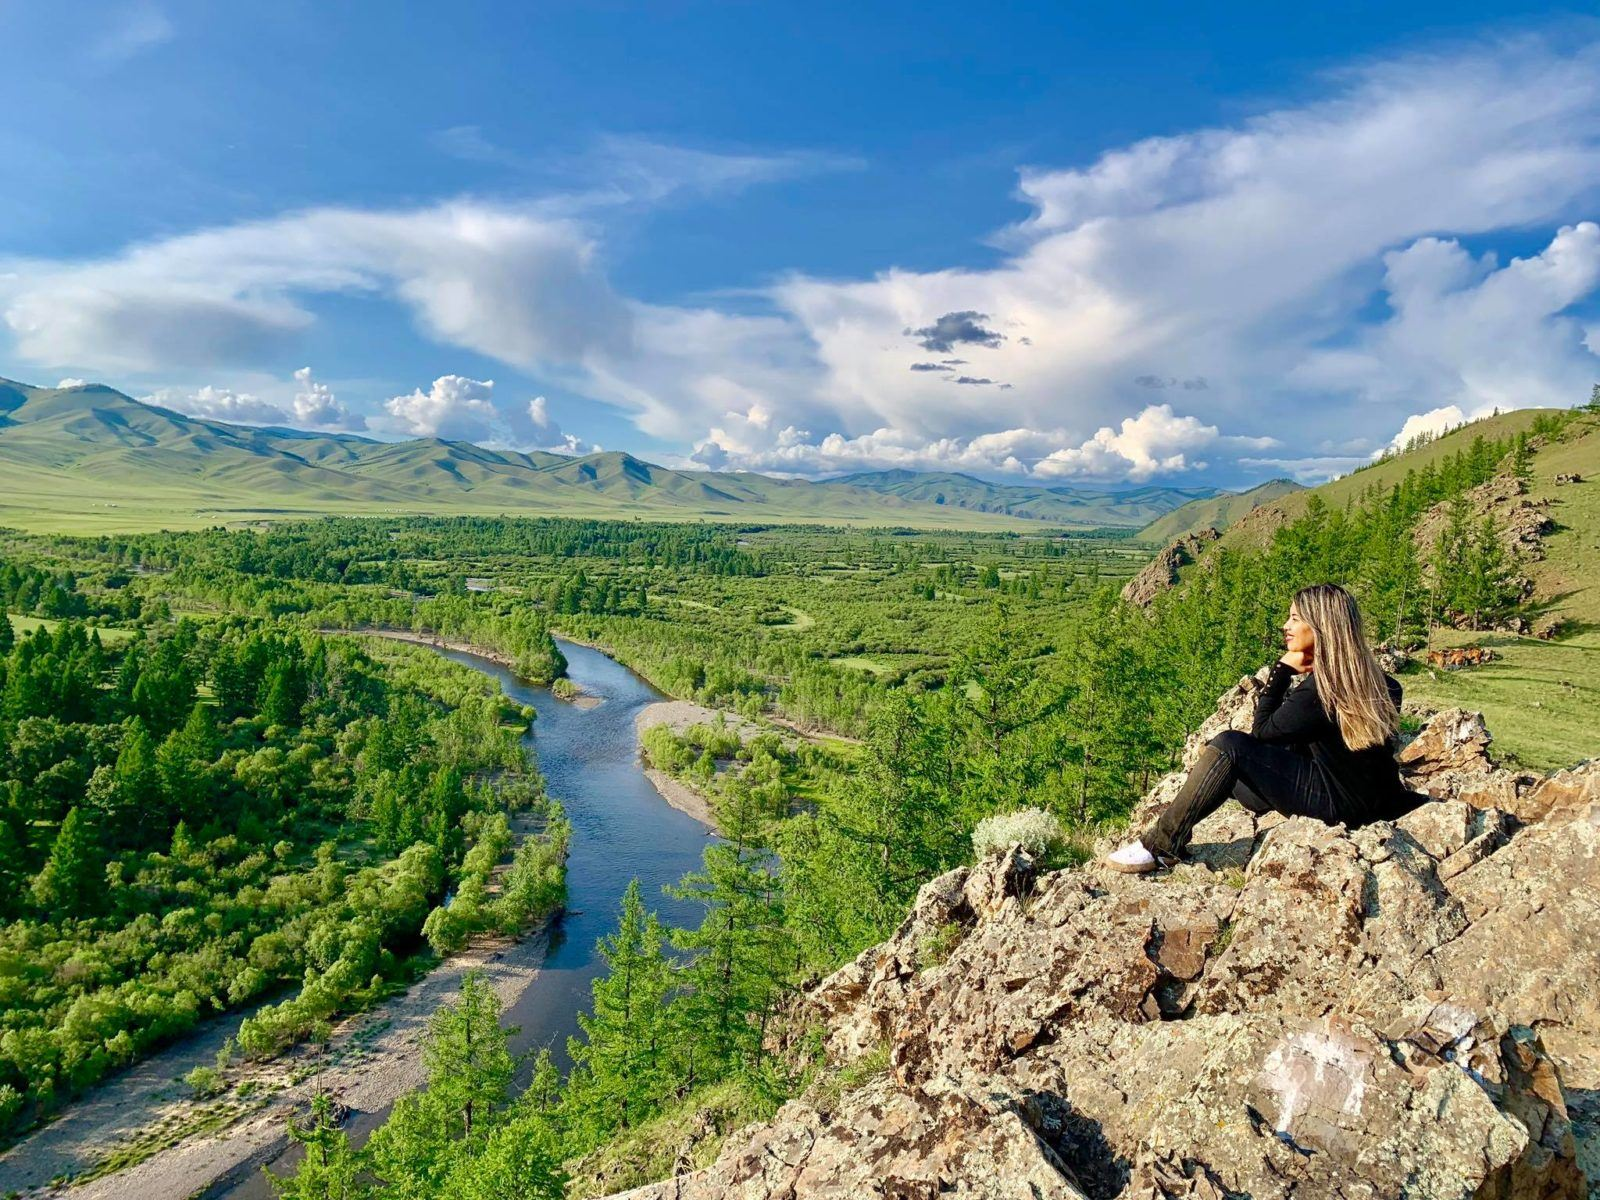 UK Passport Holder Visa Guide Tips on How a British Citizen Can Get a Tourist Visa to Mongolia